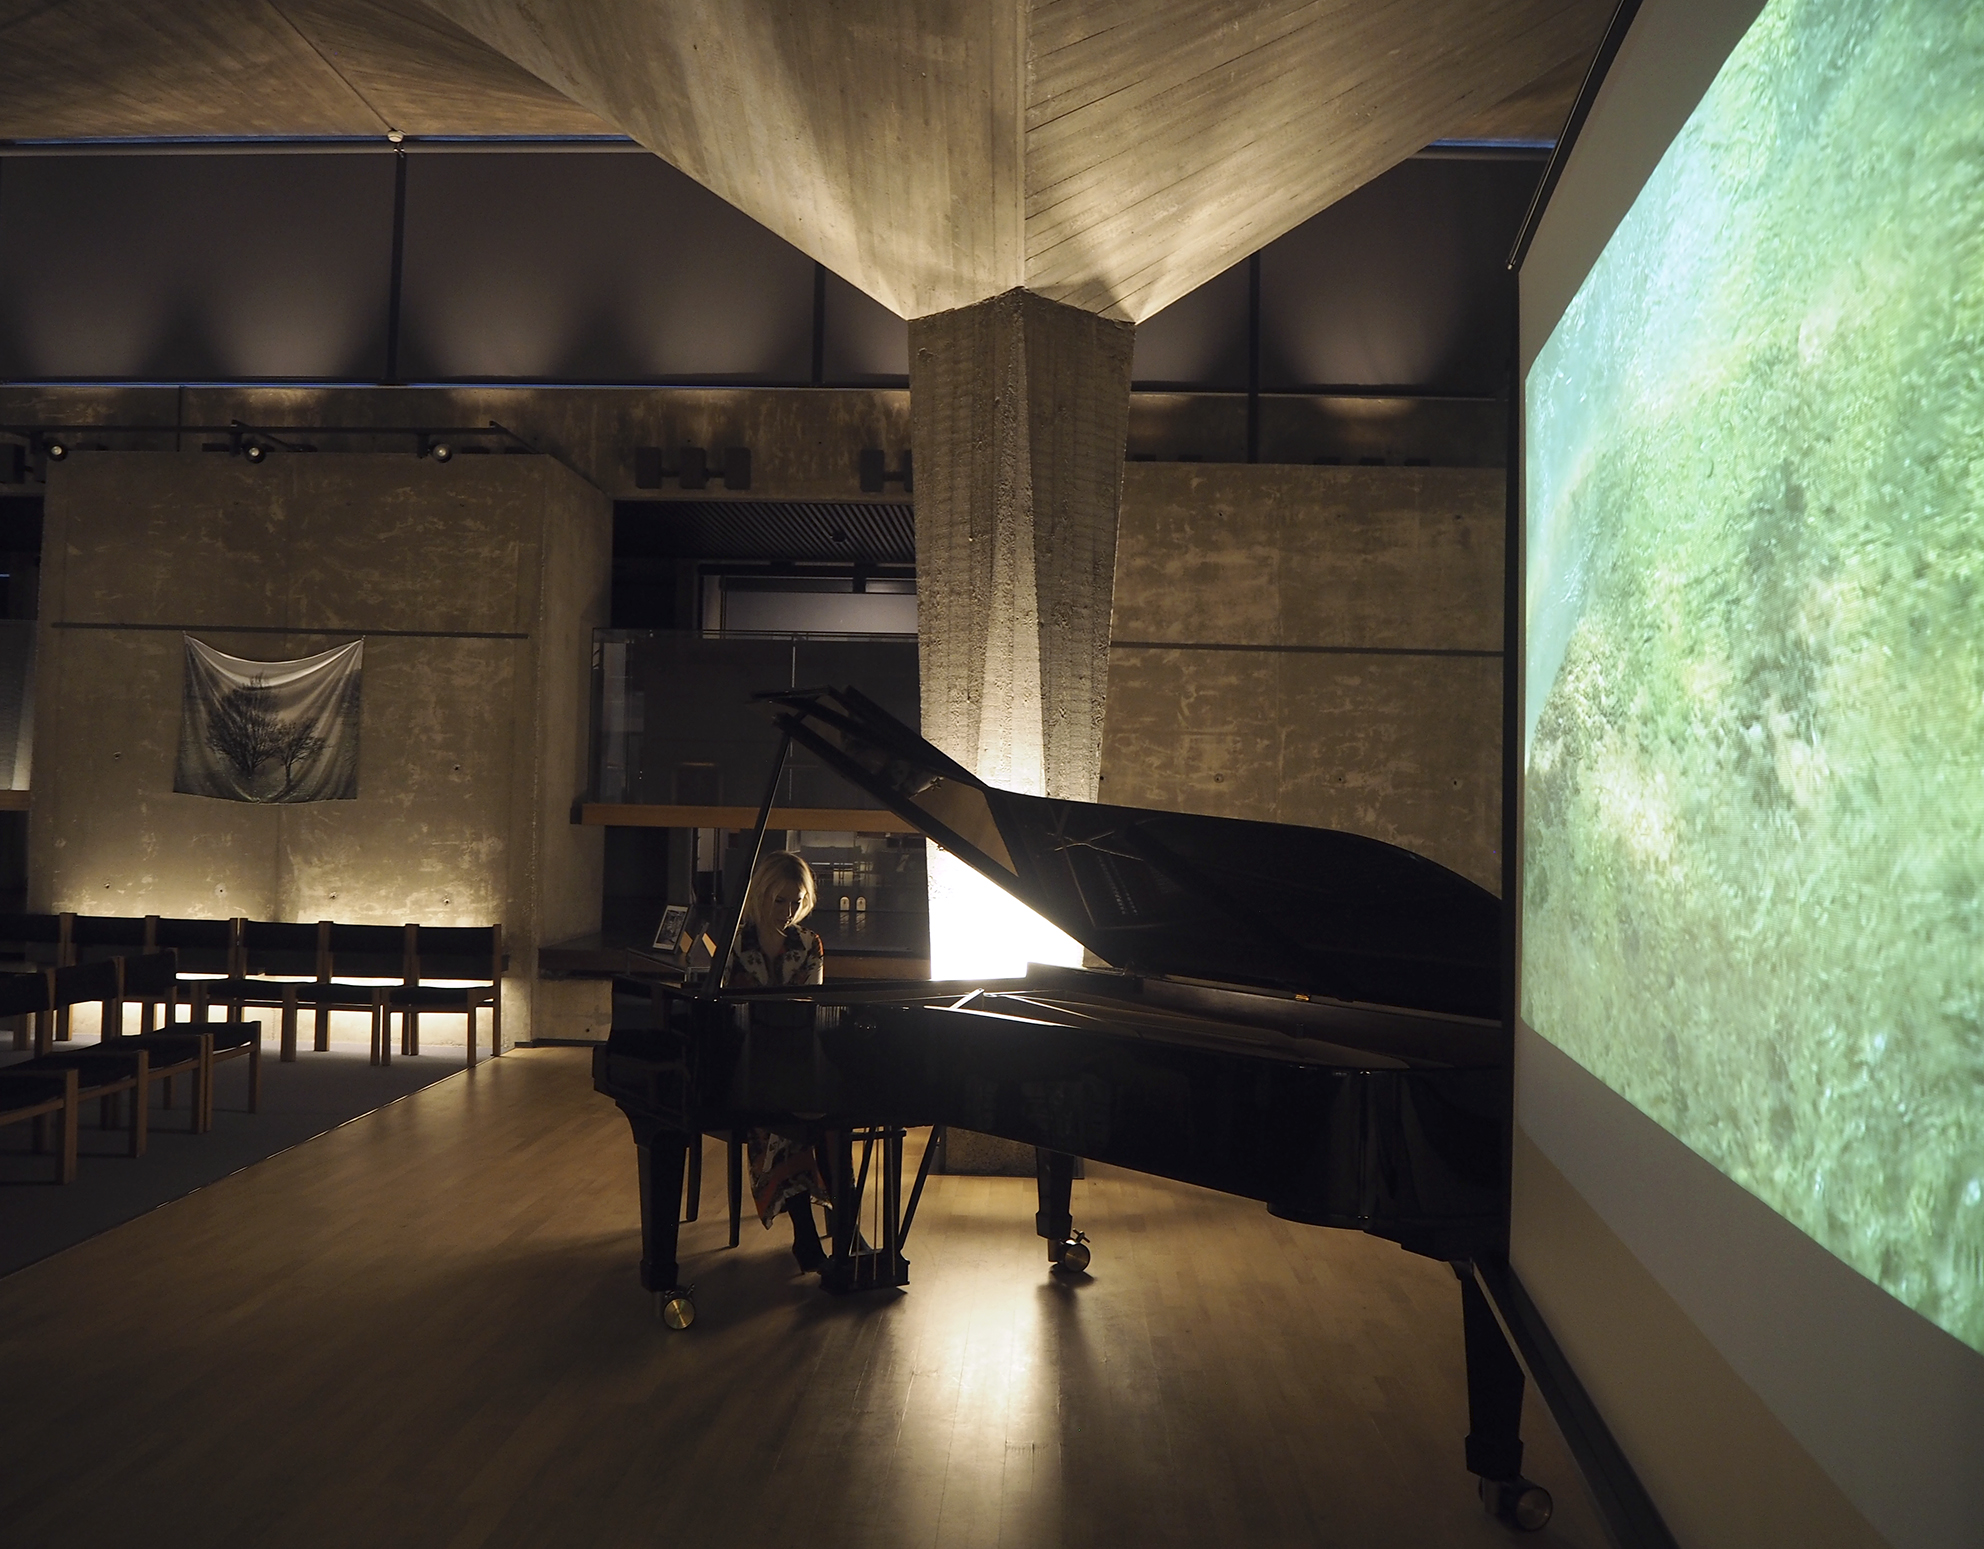 Water Rituals at Sibelius Museum